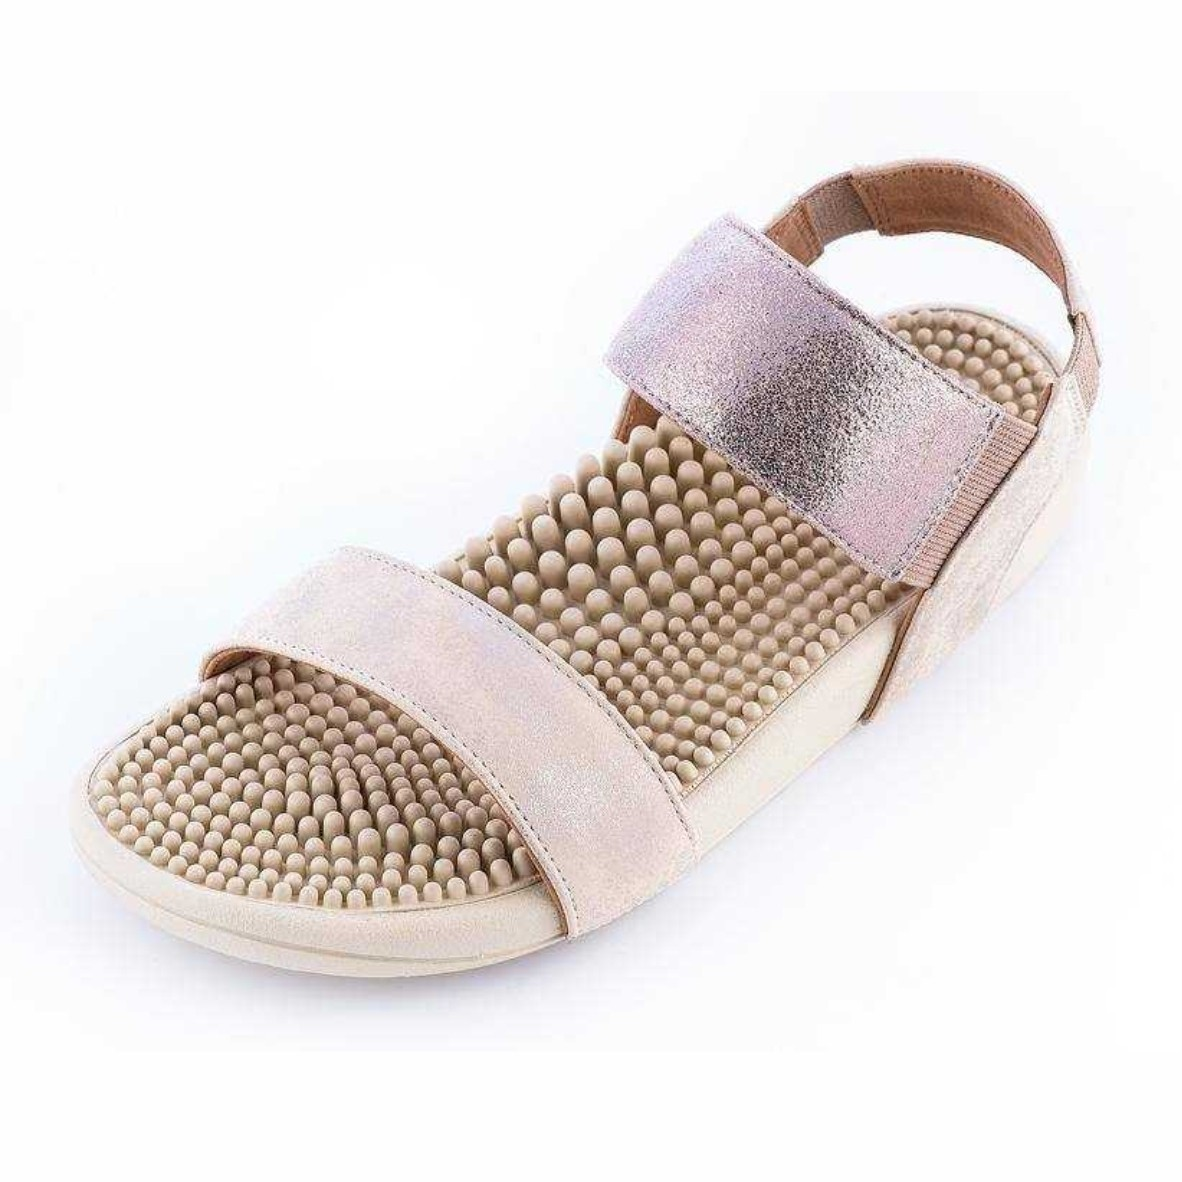 Kenkoh Sakura Massage Health Fashion Health Sandals (Beige)